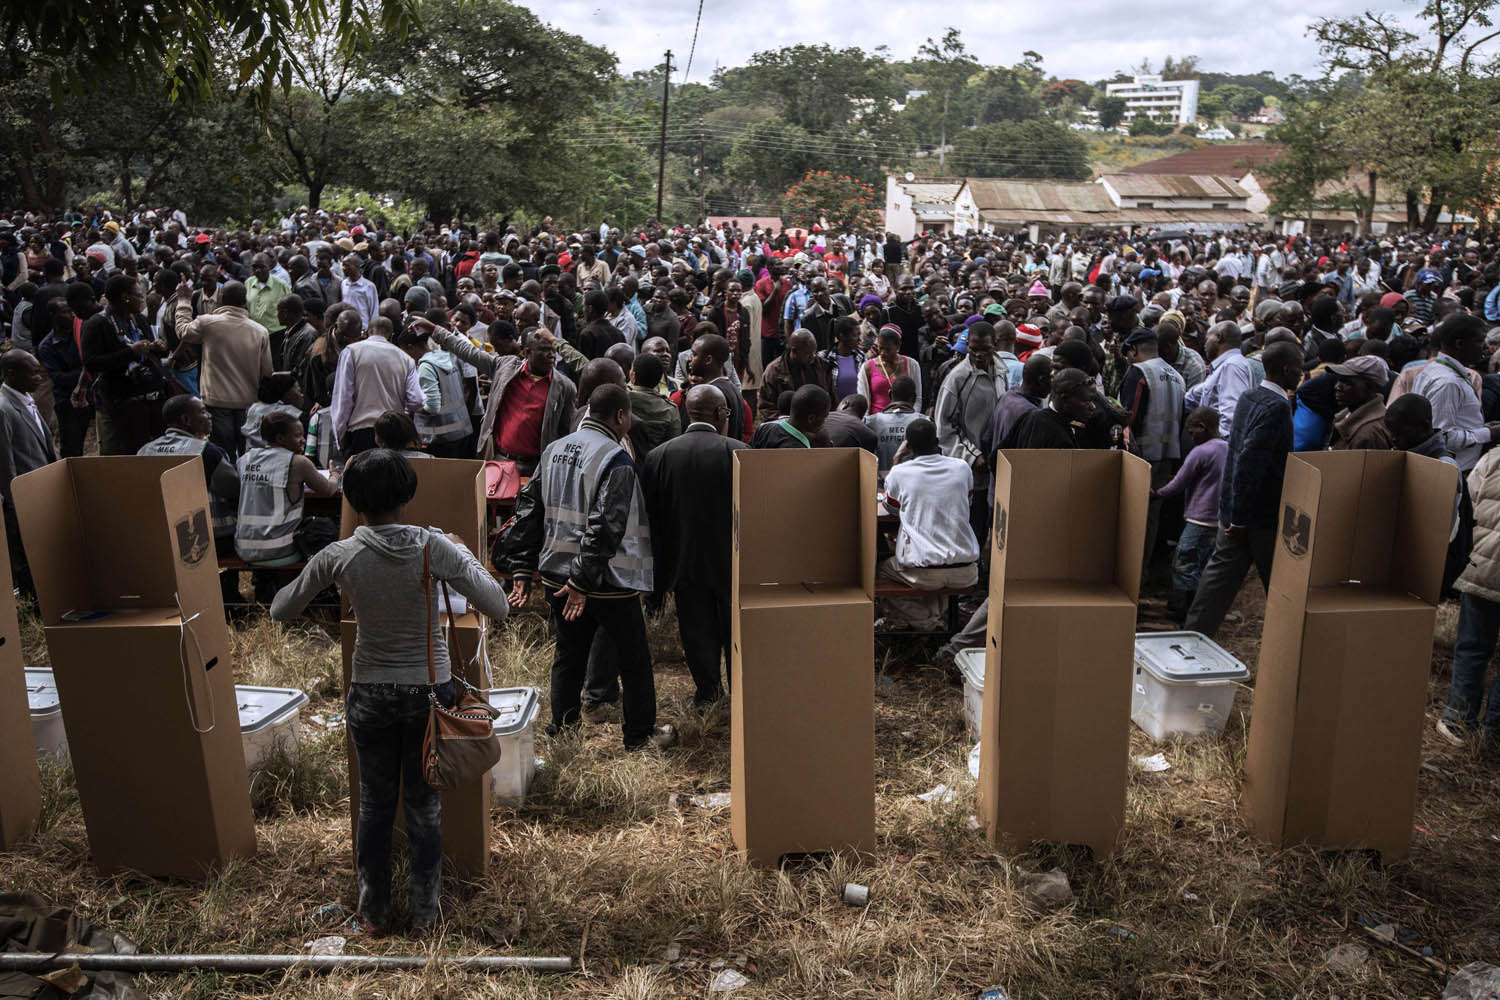 May 20, 2014. Malawians start voting after polling was delayed by several hours at a voting station in Blantyre central district during the general elections in Blantyre.